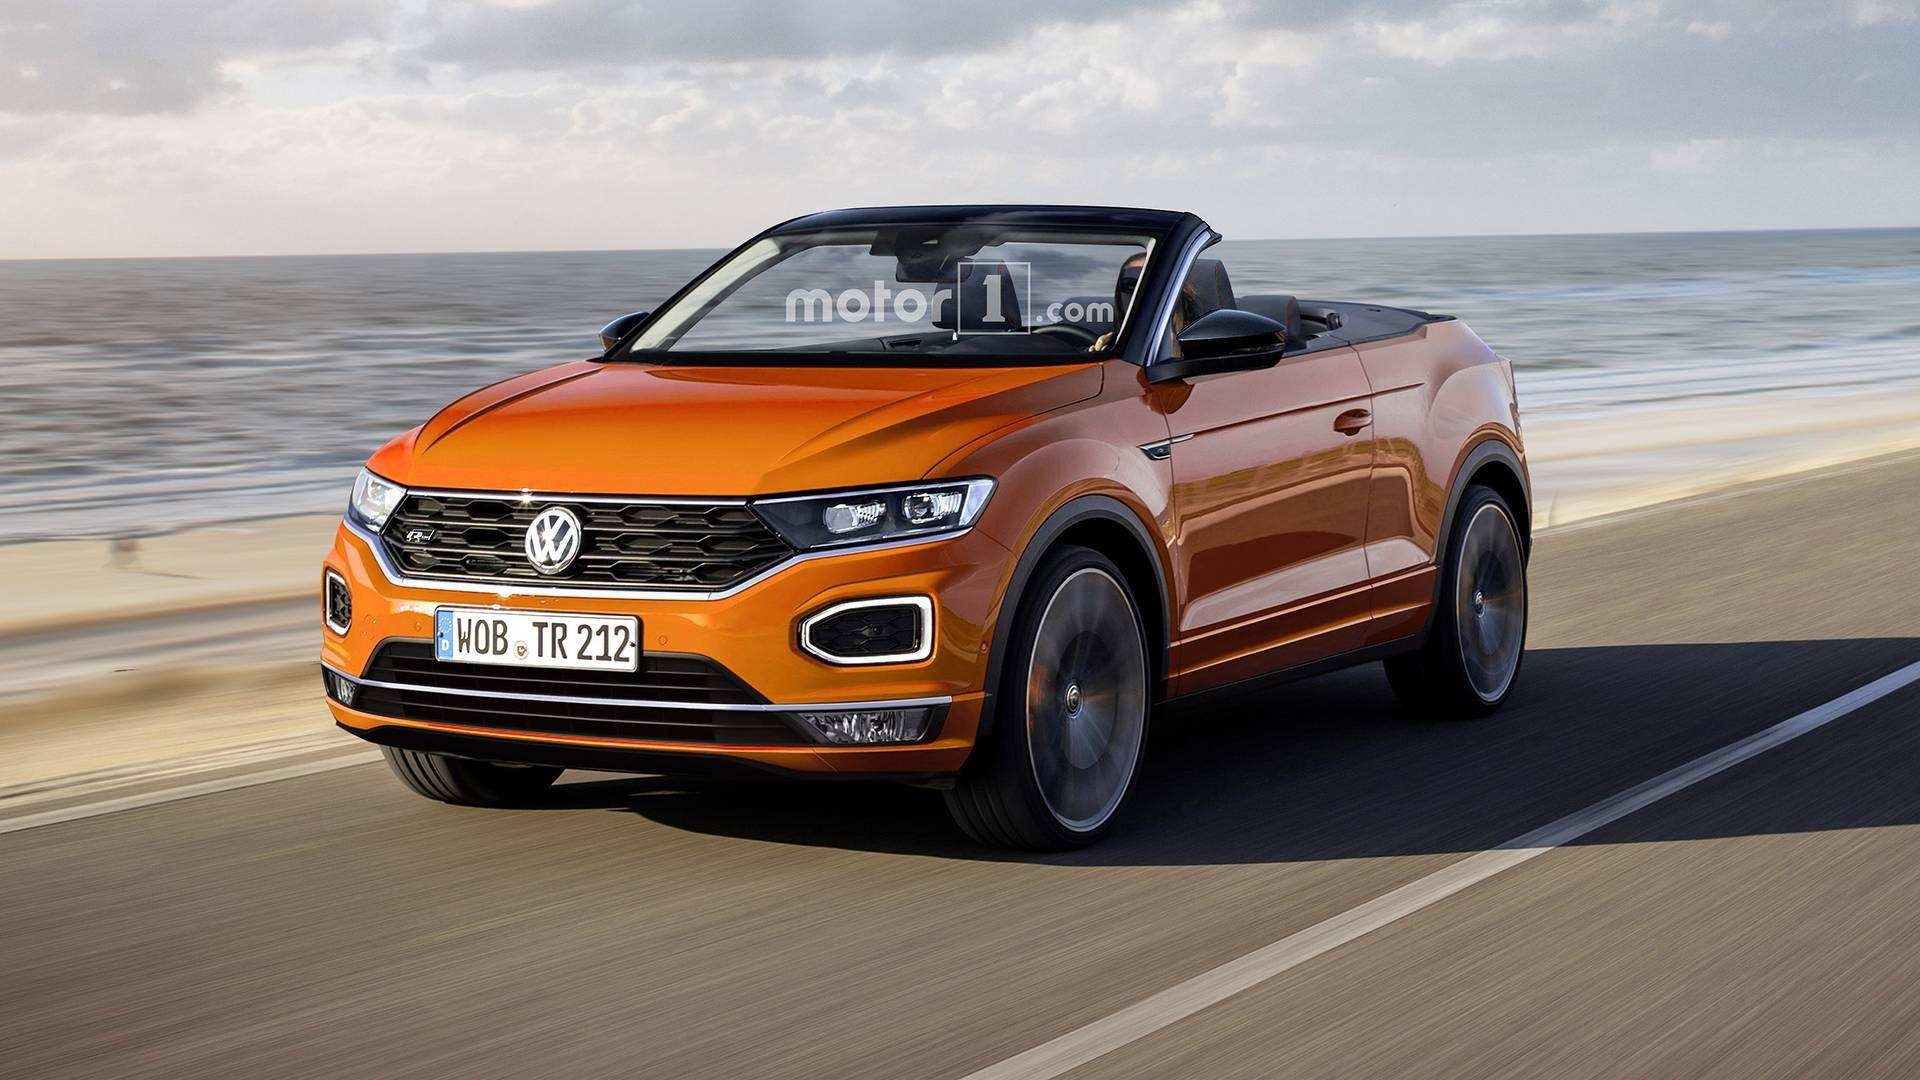 55 Best Review Volkswagen T Roc Cabrio 2020 Price by Volkswagen T Roc Cabrio 2020